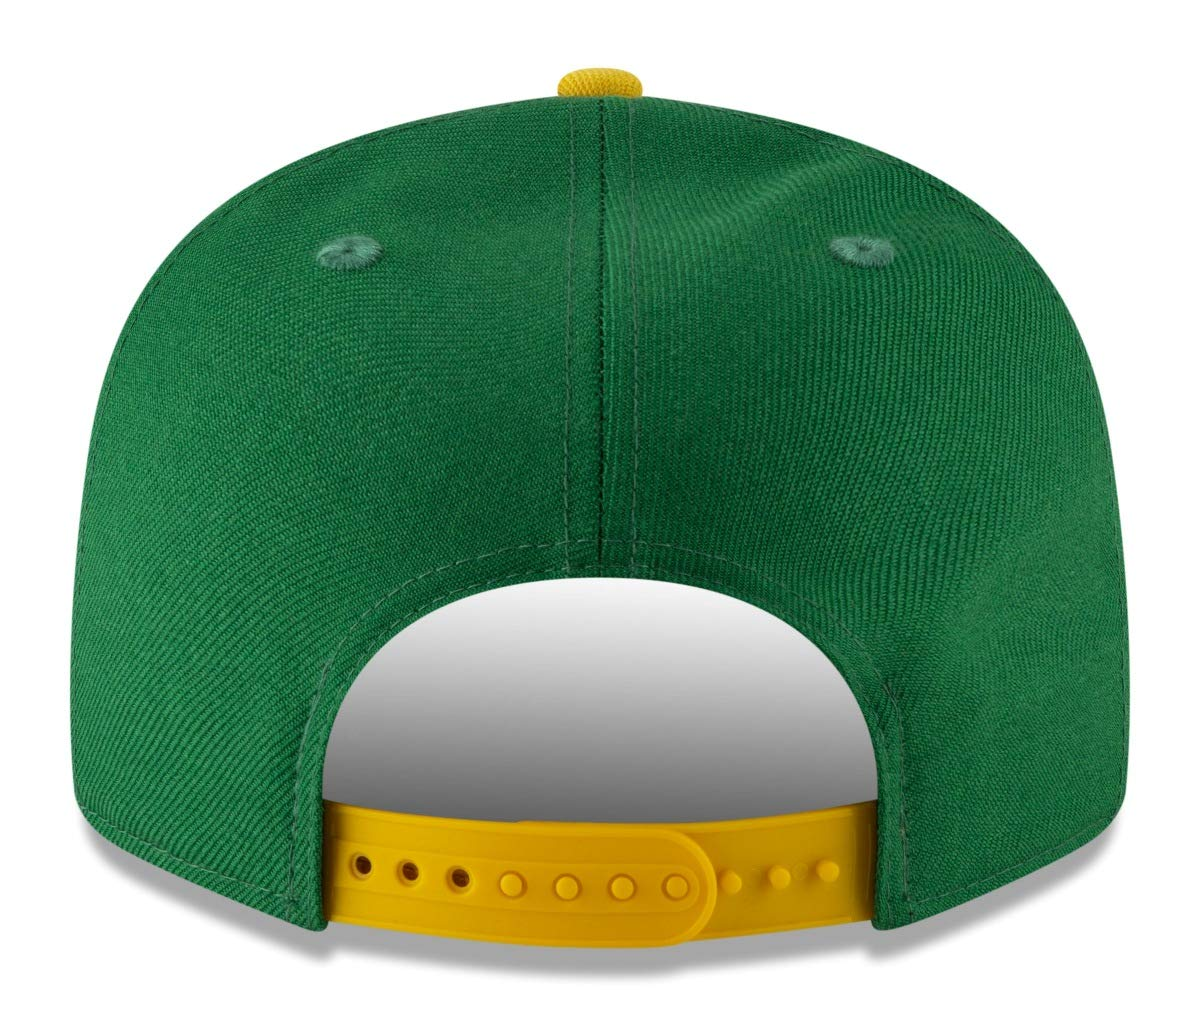 f3ab42186321cc Amazon.com : New Era Oakland Athletics 9FIFTY MLB Cooperstown Logo Pack  Snapback Hat : Sports & Outdoors